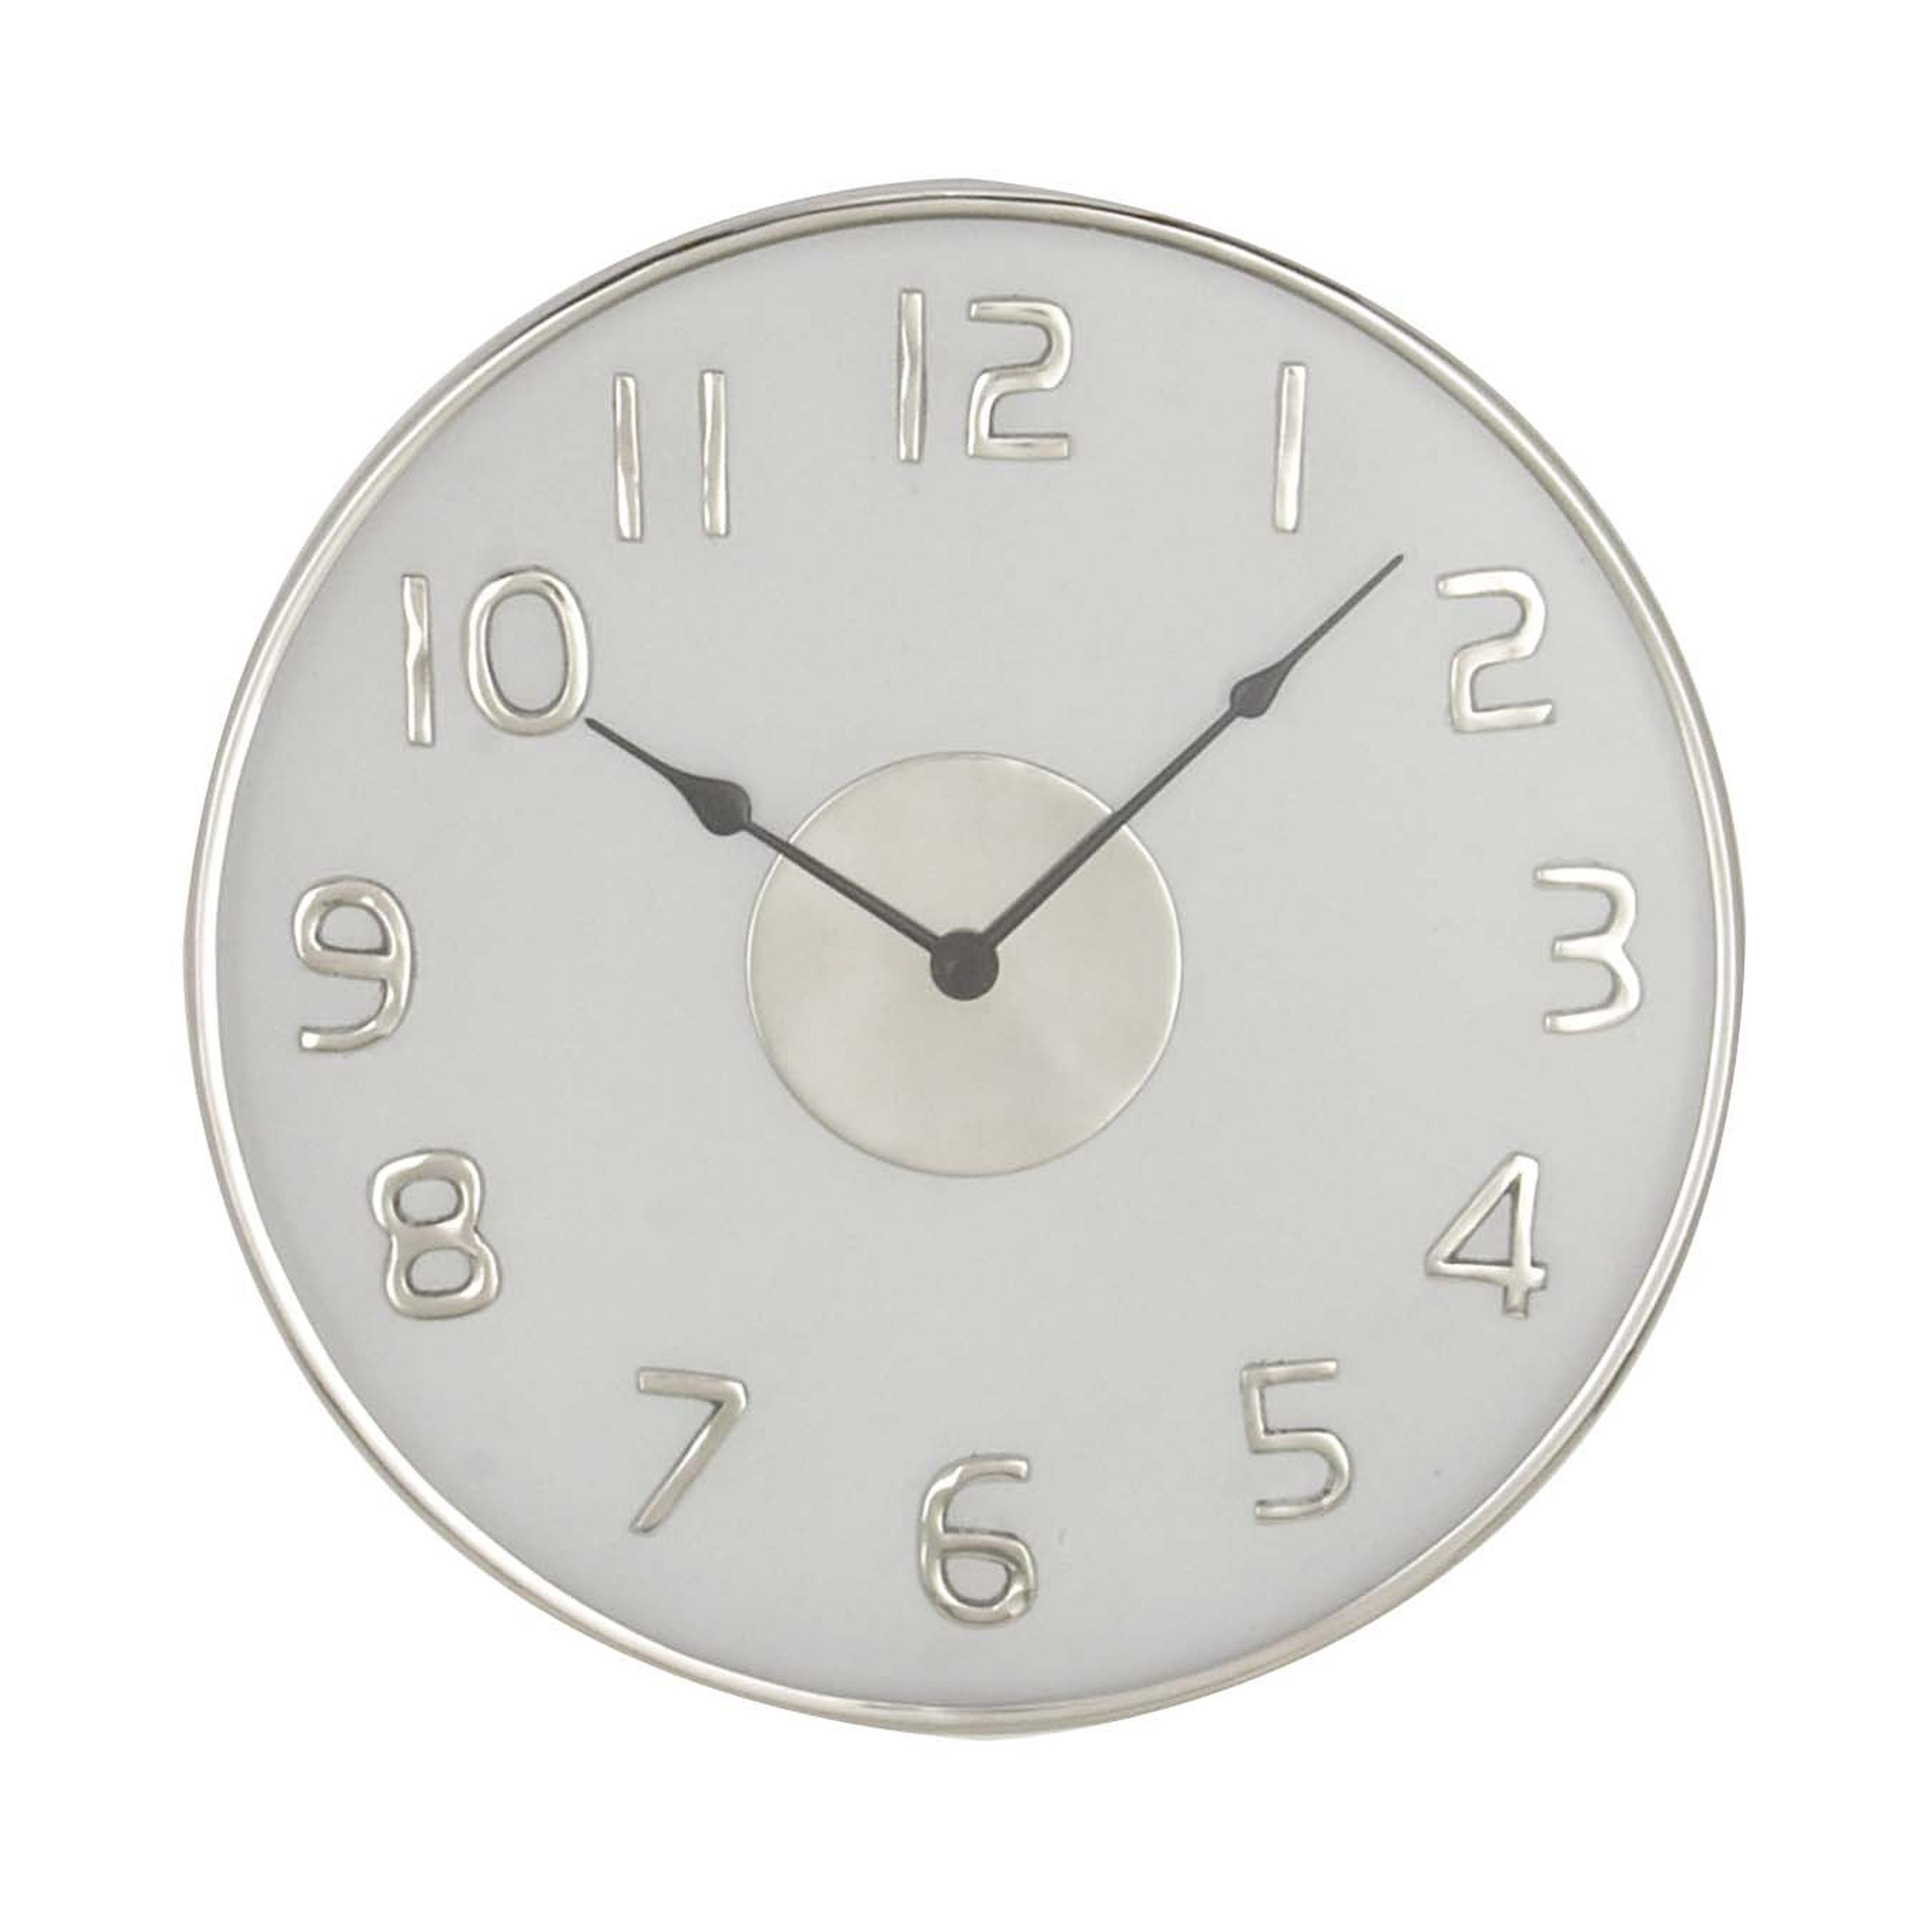 18 Inch Modern Round White Stainless Steel Wall Clock